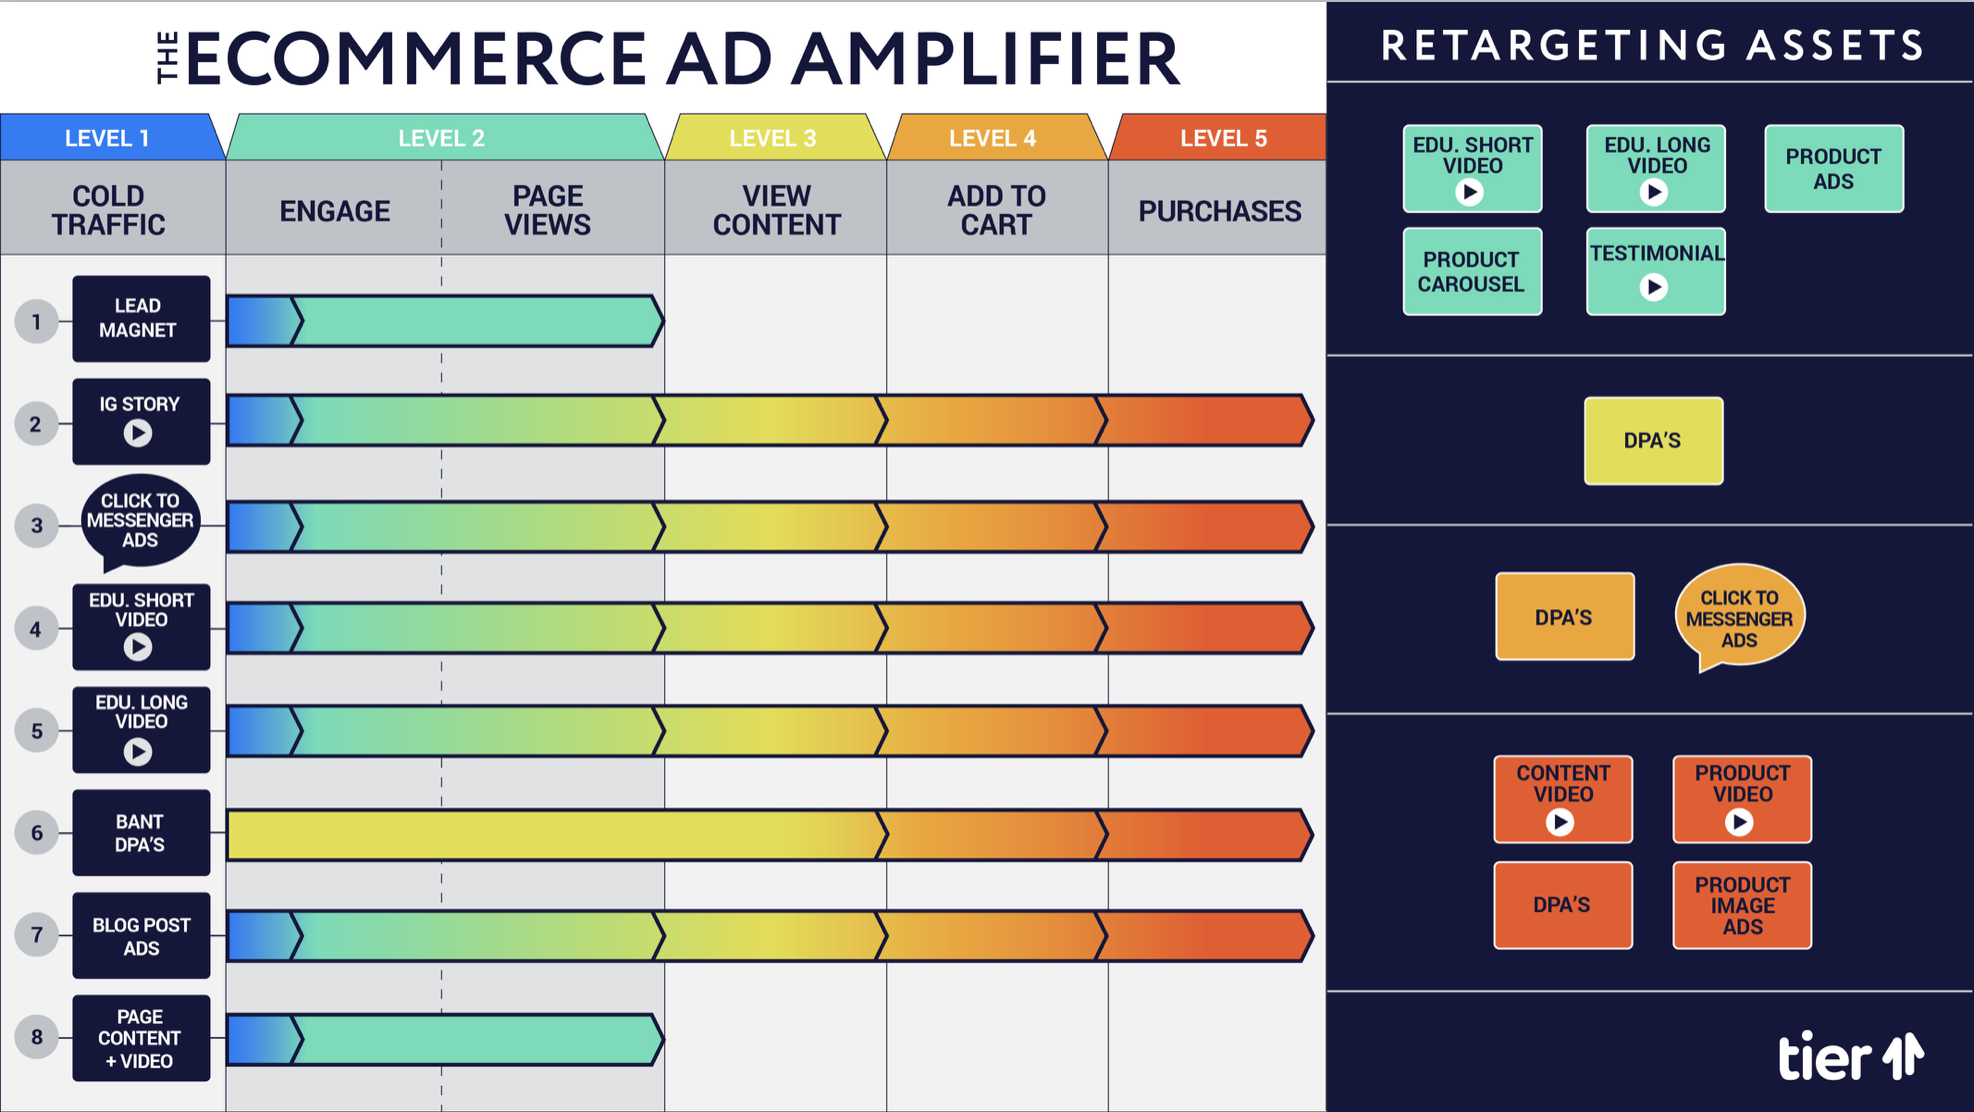 The Ecommerce Ad Amplifier